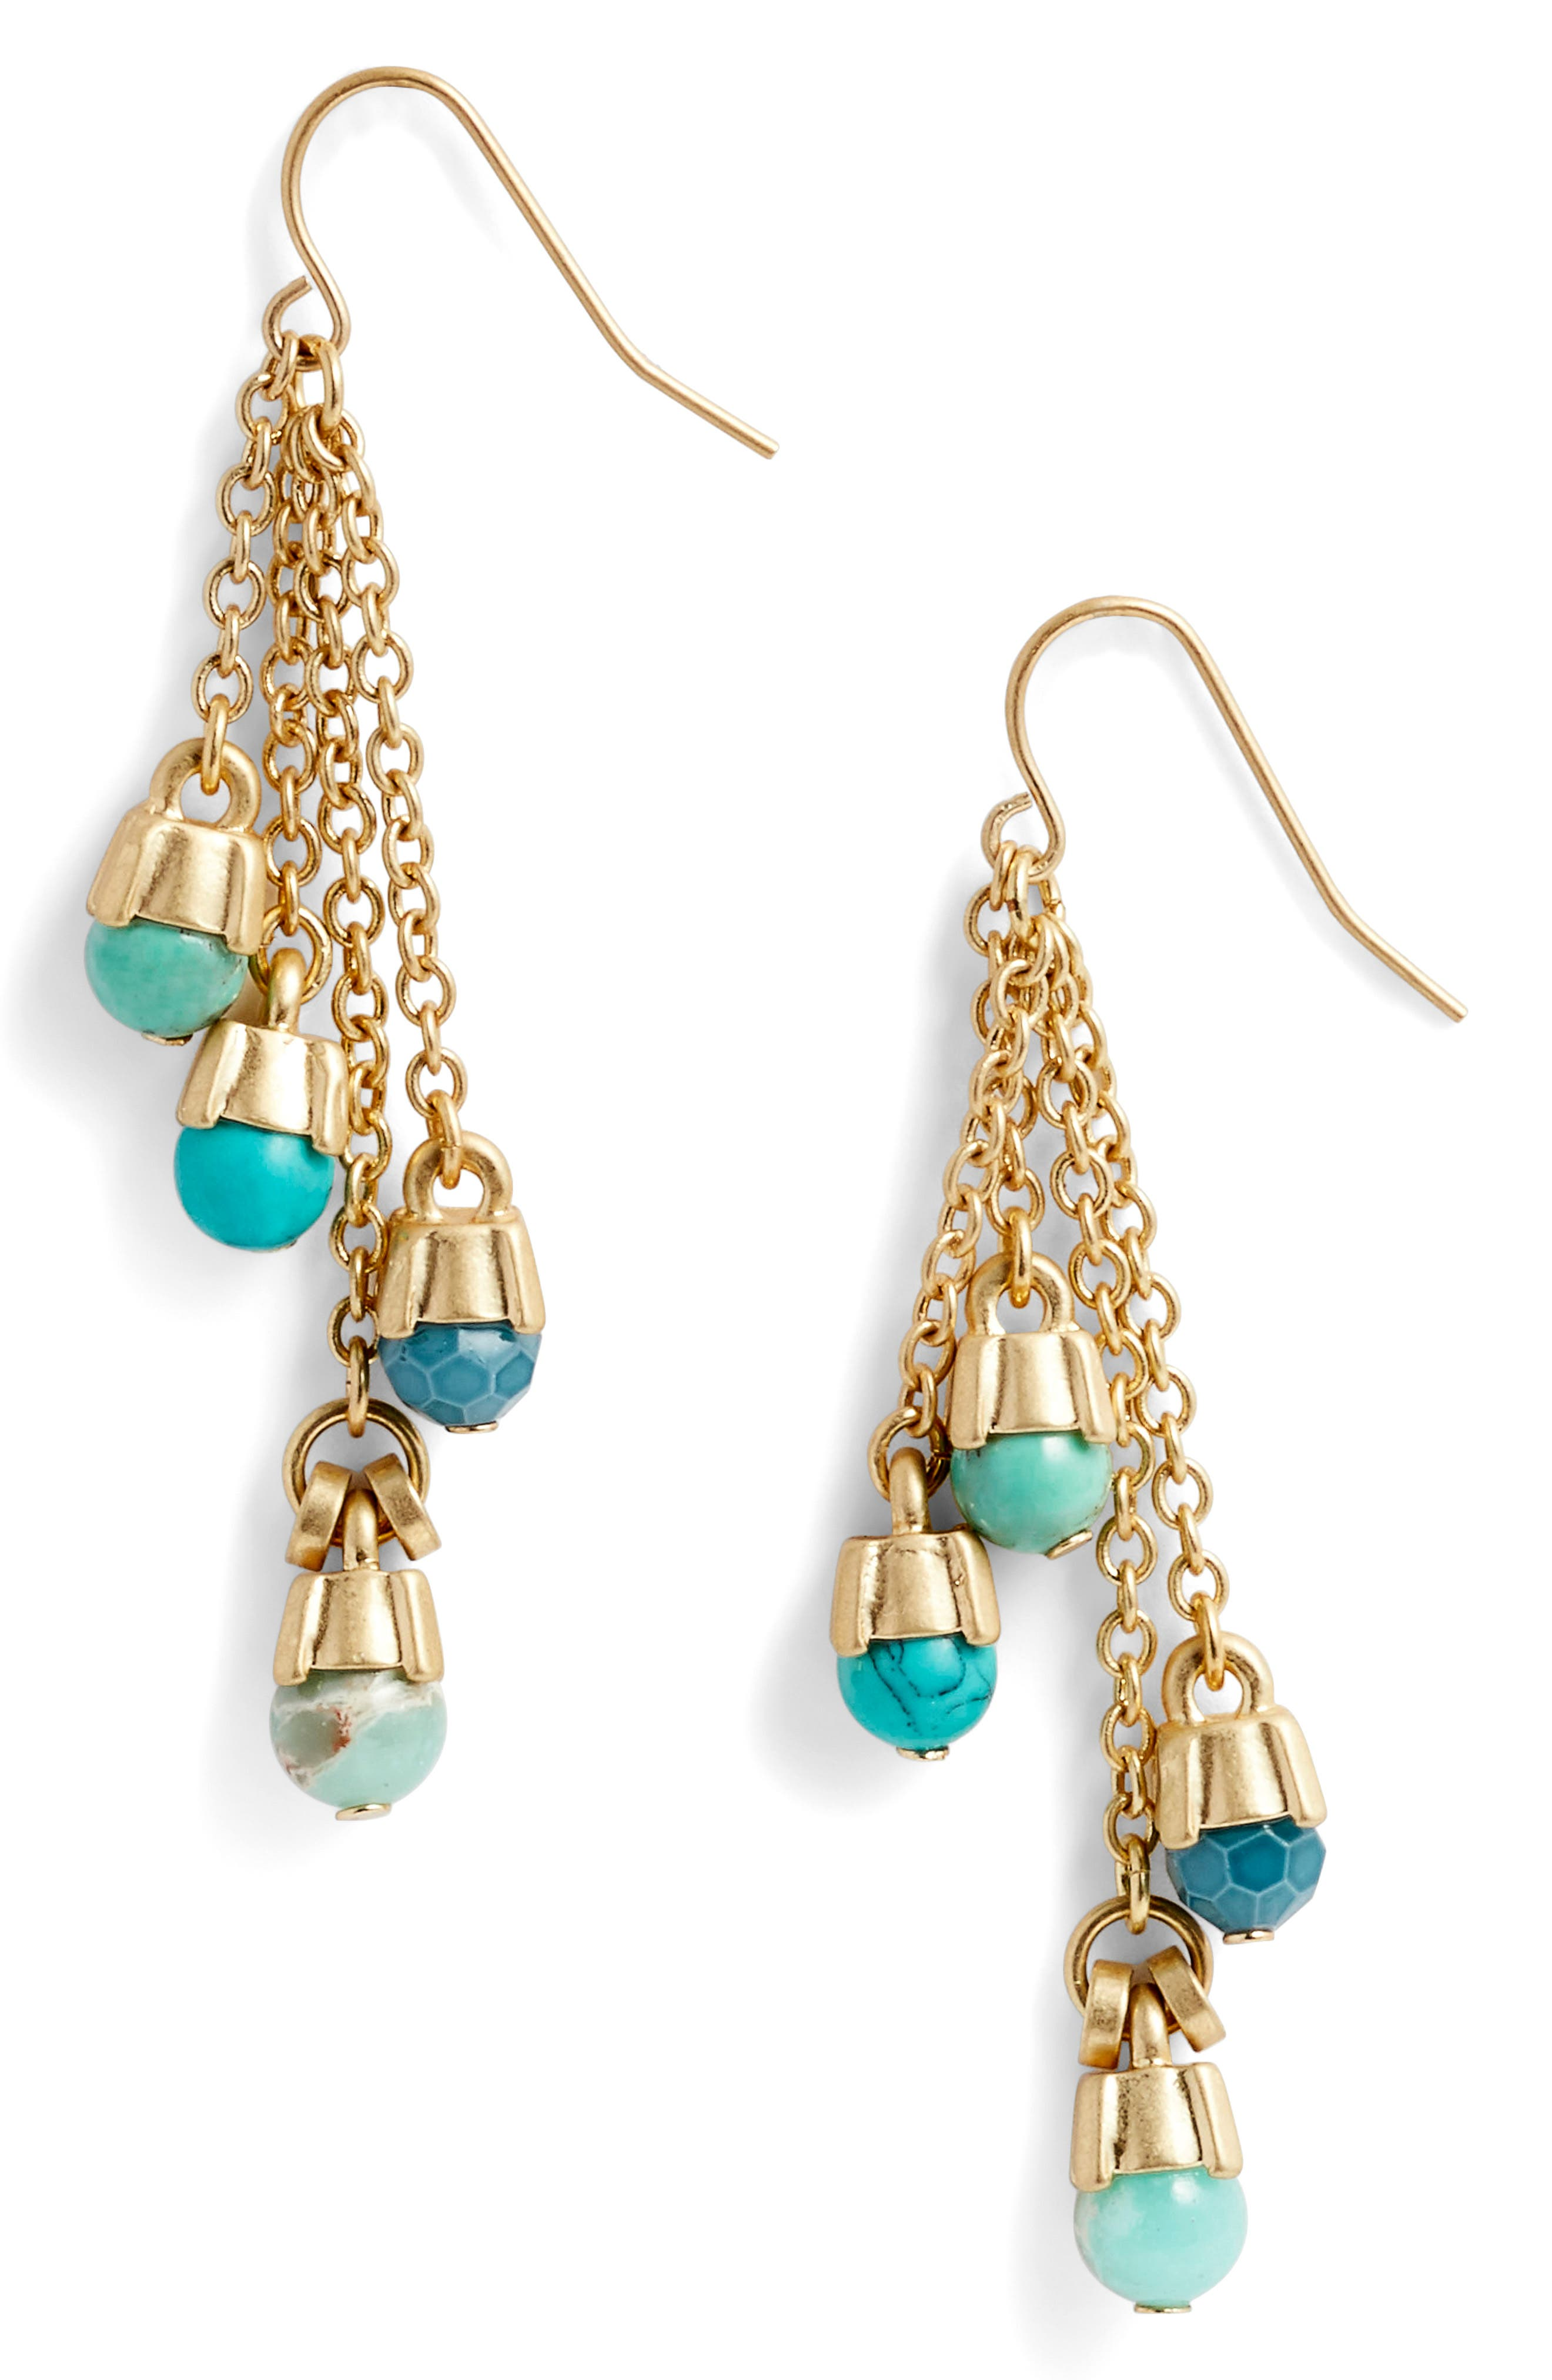 Four-Stone Linear Drop Earrings,                         Main,                         color, Turquoise- Gold